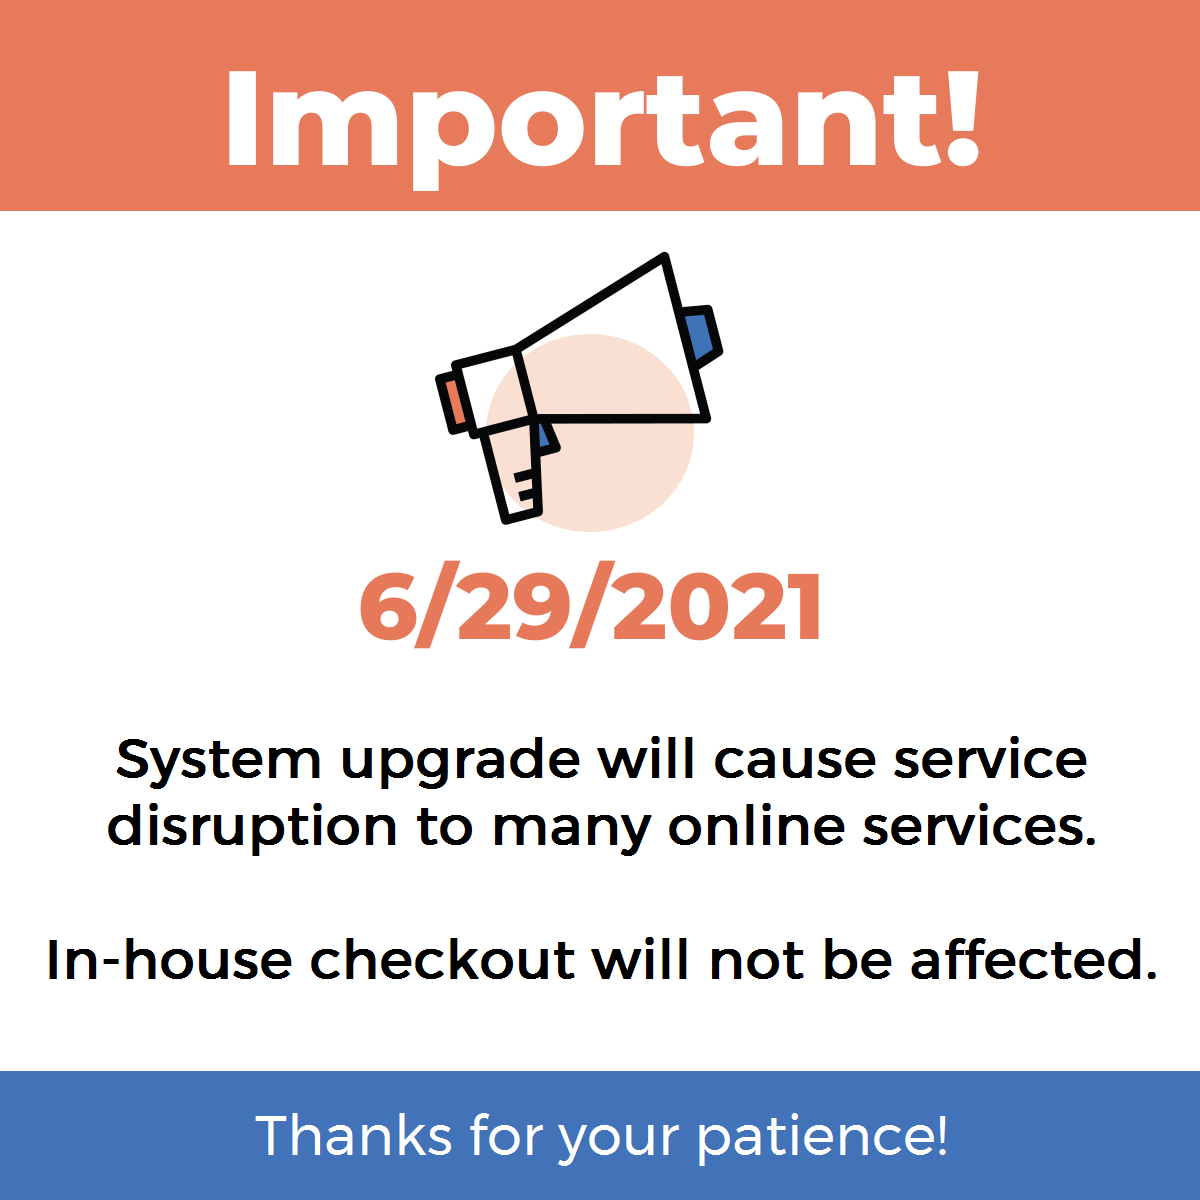 Important: On 6/29, a system upgrade will disrupt most of our online services.  In-house checkout will not be affected.